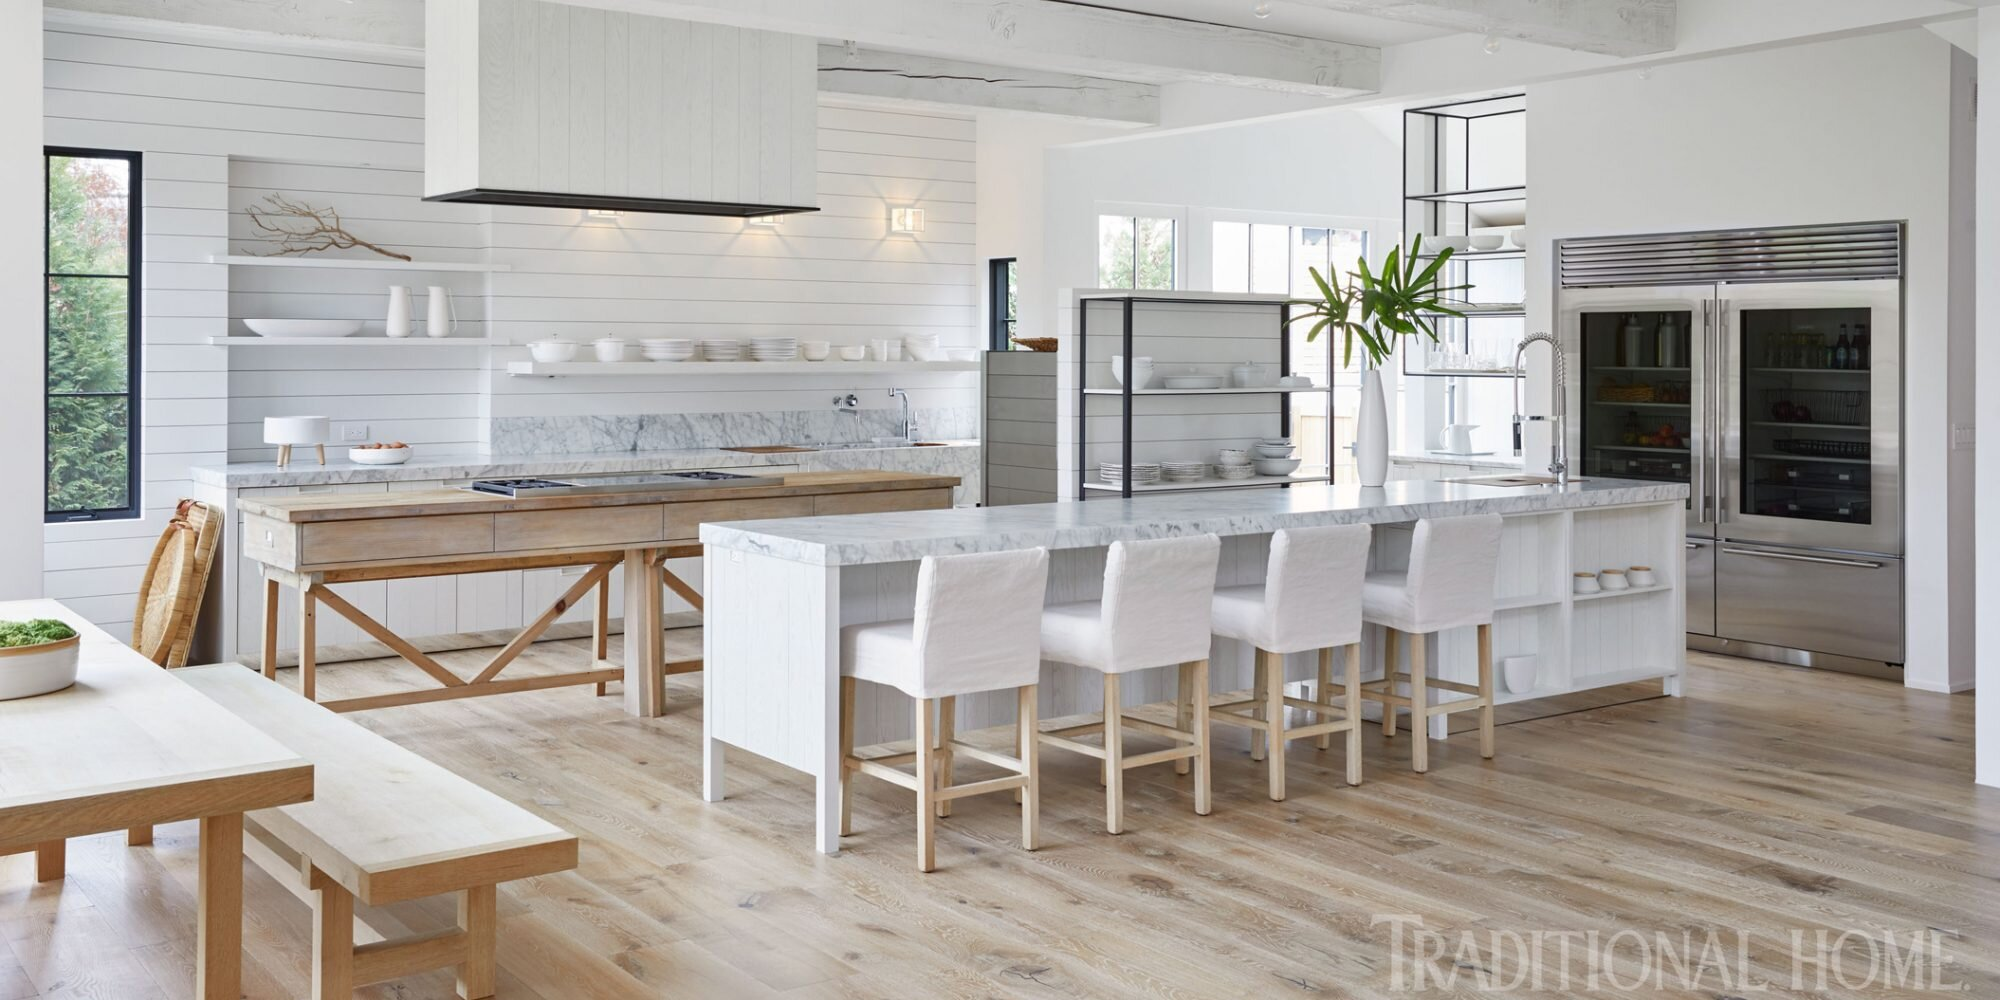 A Kitchen Designer Shares His 7 Tips on How to Create a Kitchen-Centric Home